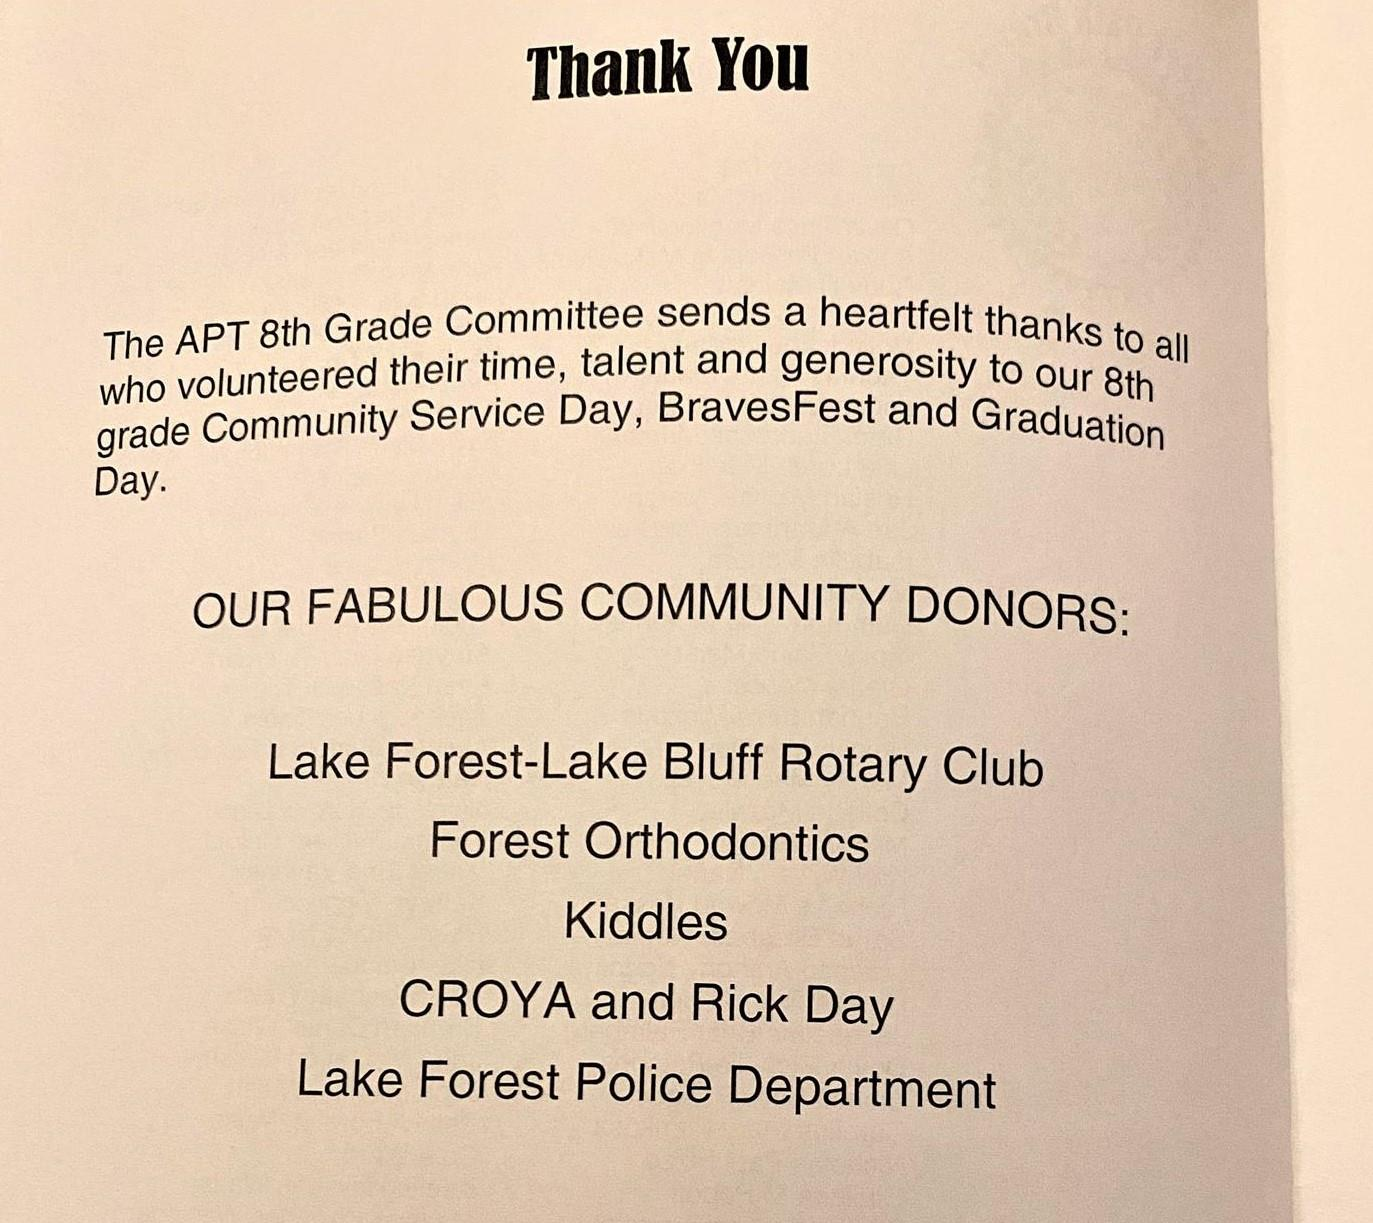 Thank You, The APT 8th Grade Committee sends a heartfelt thanks to all who volunteered their time, talent and generosity to our 8th grade Community Service Day, ...Fest and Graduation Day. OUR FABULOUS COMMUNITY DONORS: Lake Forest - Lake Bluff Rotary Club, Forest Orthodontics, Kiddles, CROYA and Rick Day, Lake Forest Police Department